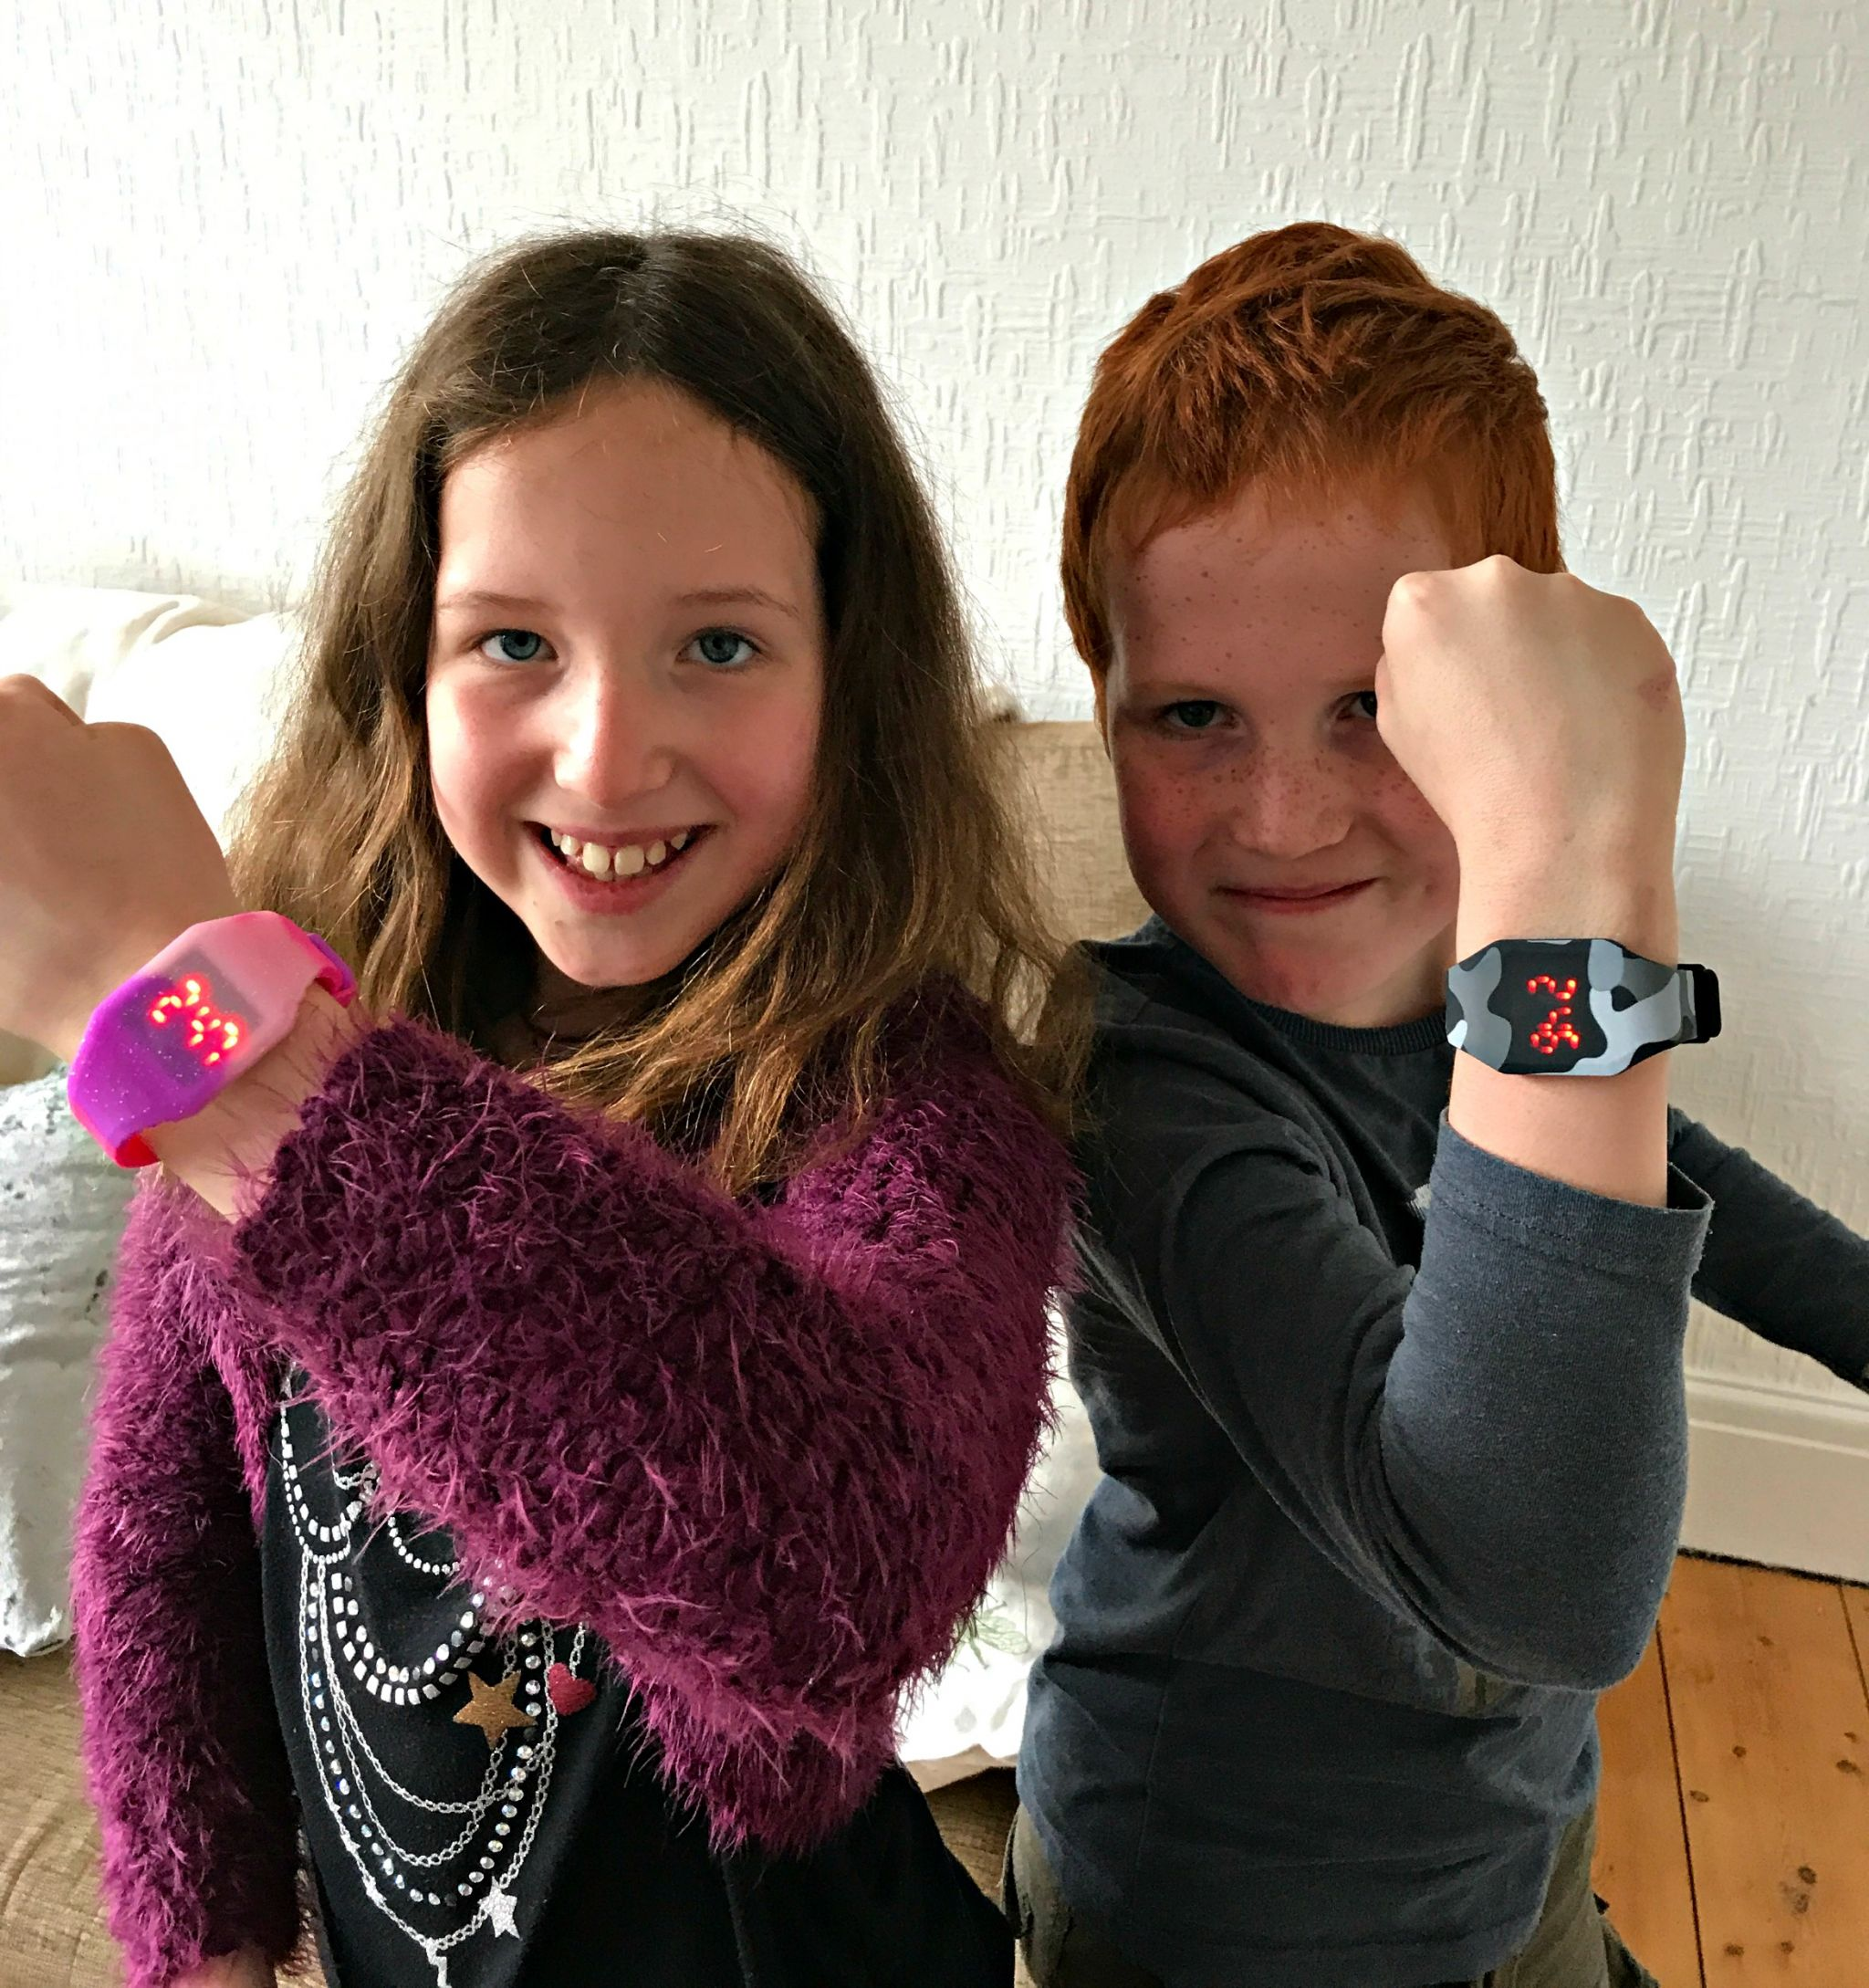 Caiitlin & Ieuan with Smiggle watches from back to school 2017 range